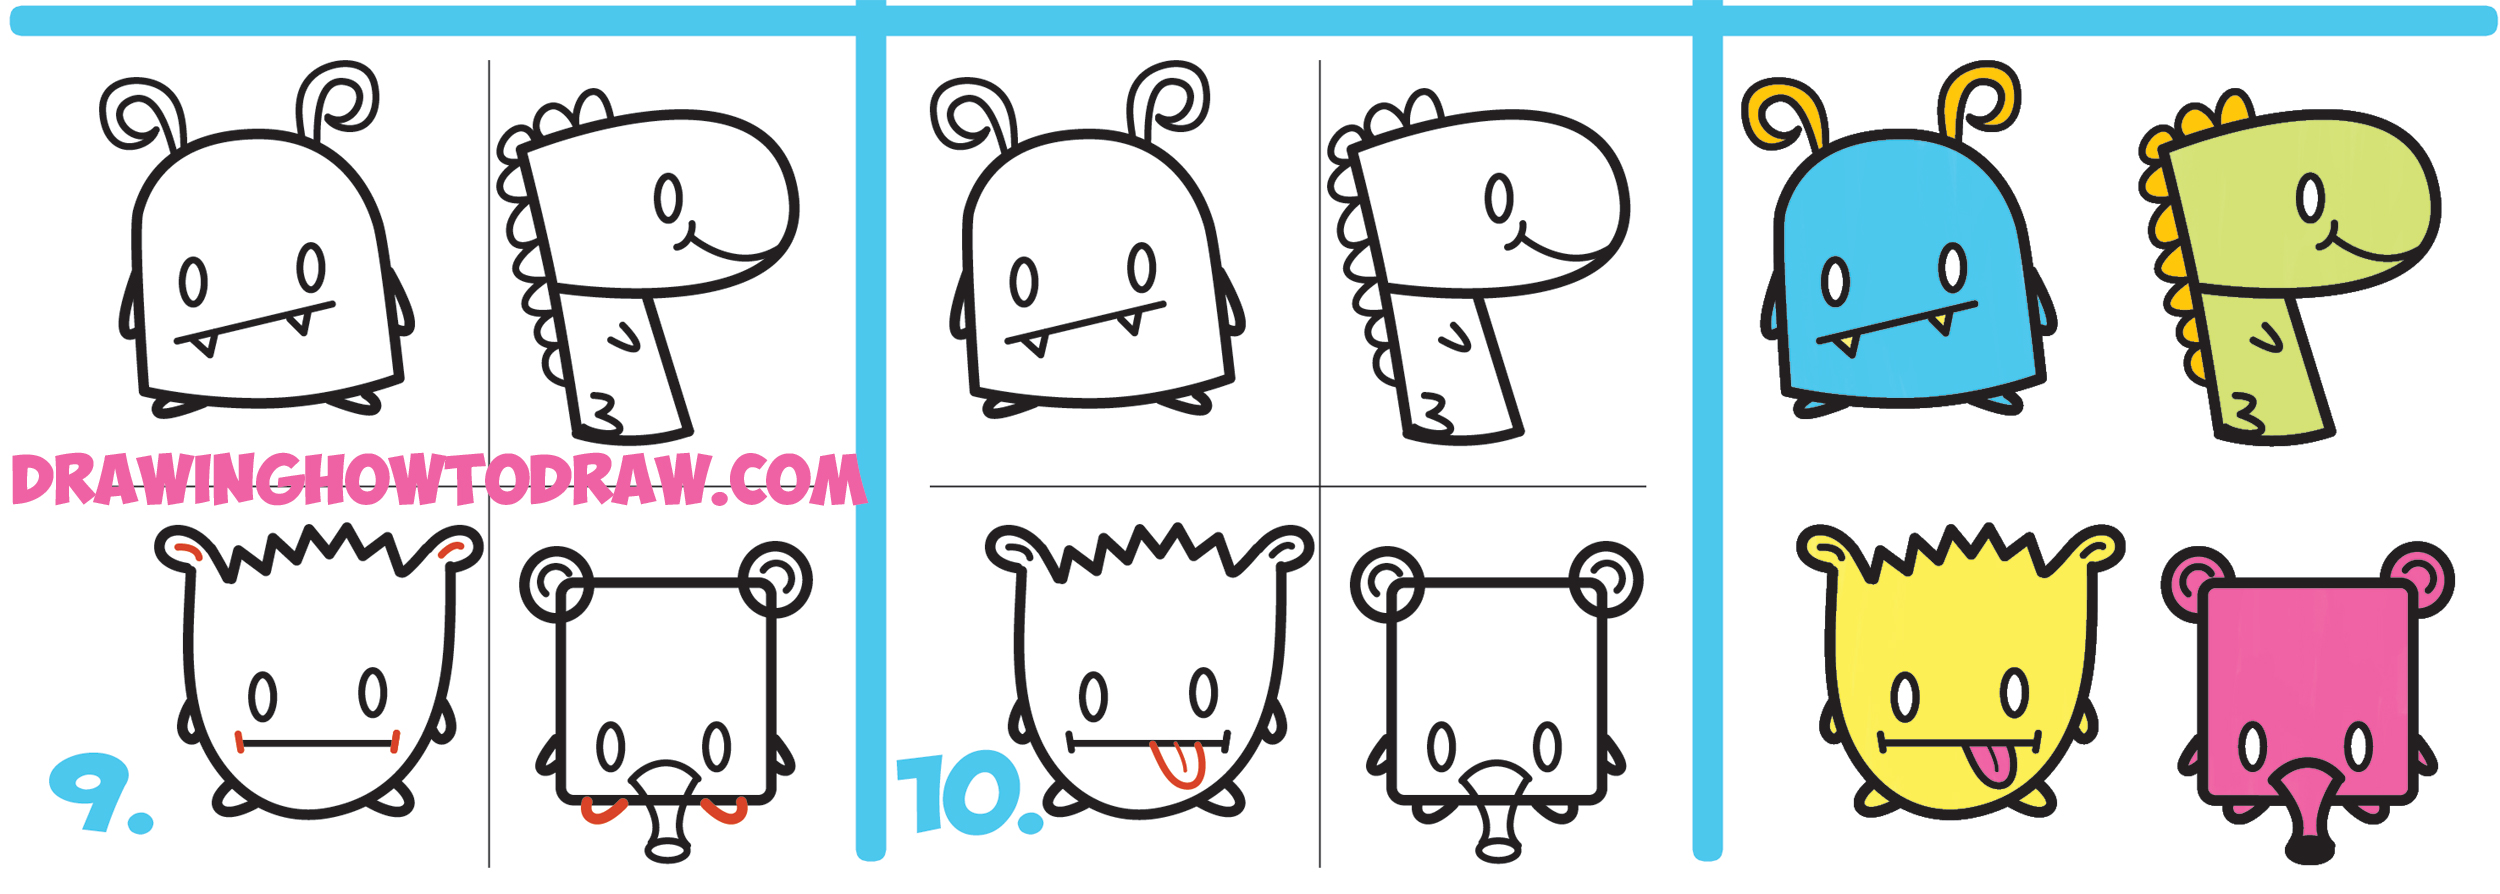 learn how to draw cute cartoon monsters from simple shapes letters and numbers for kids